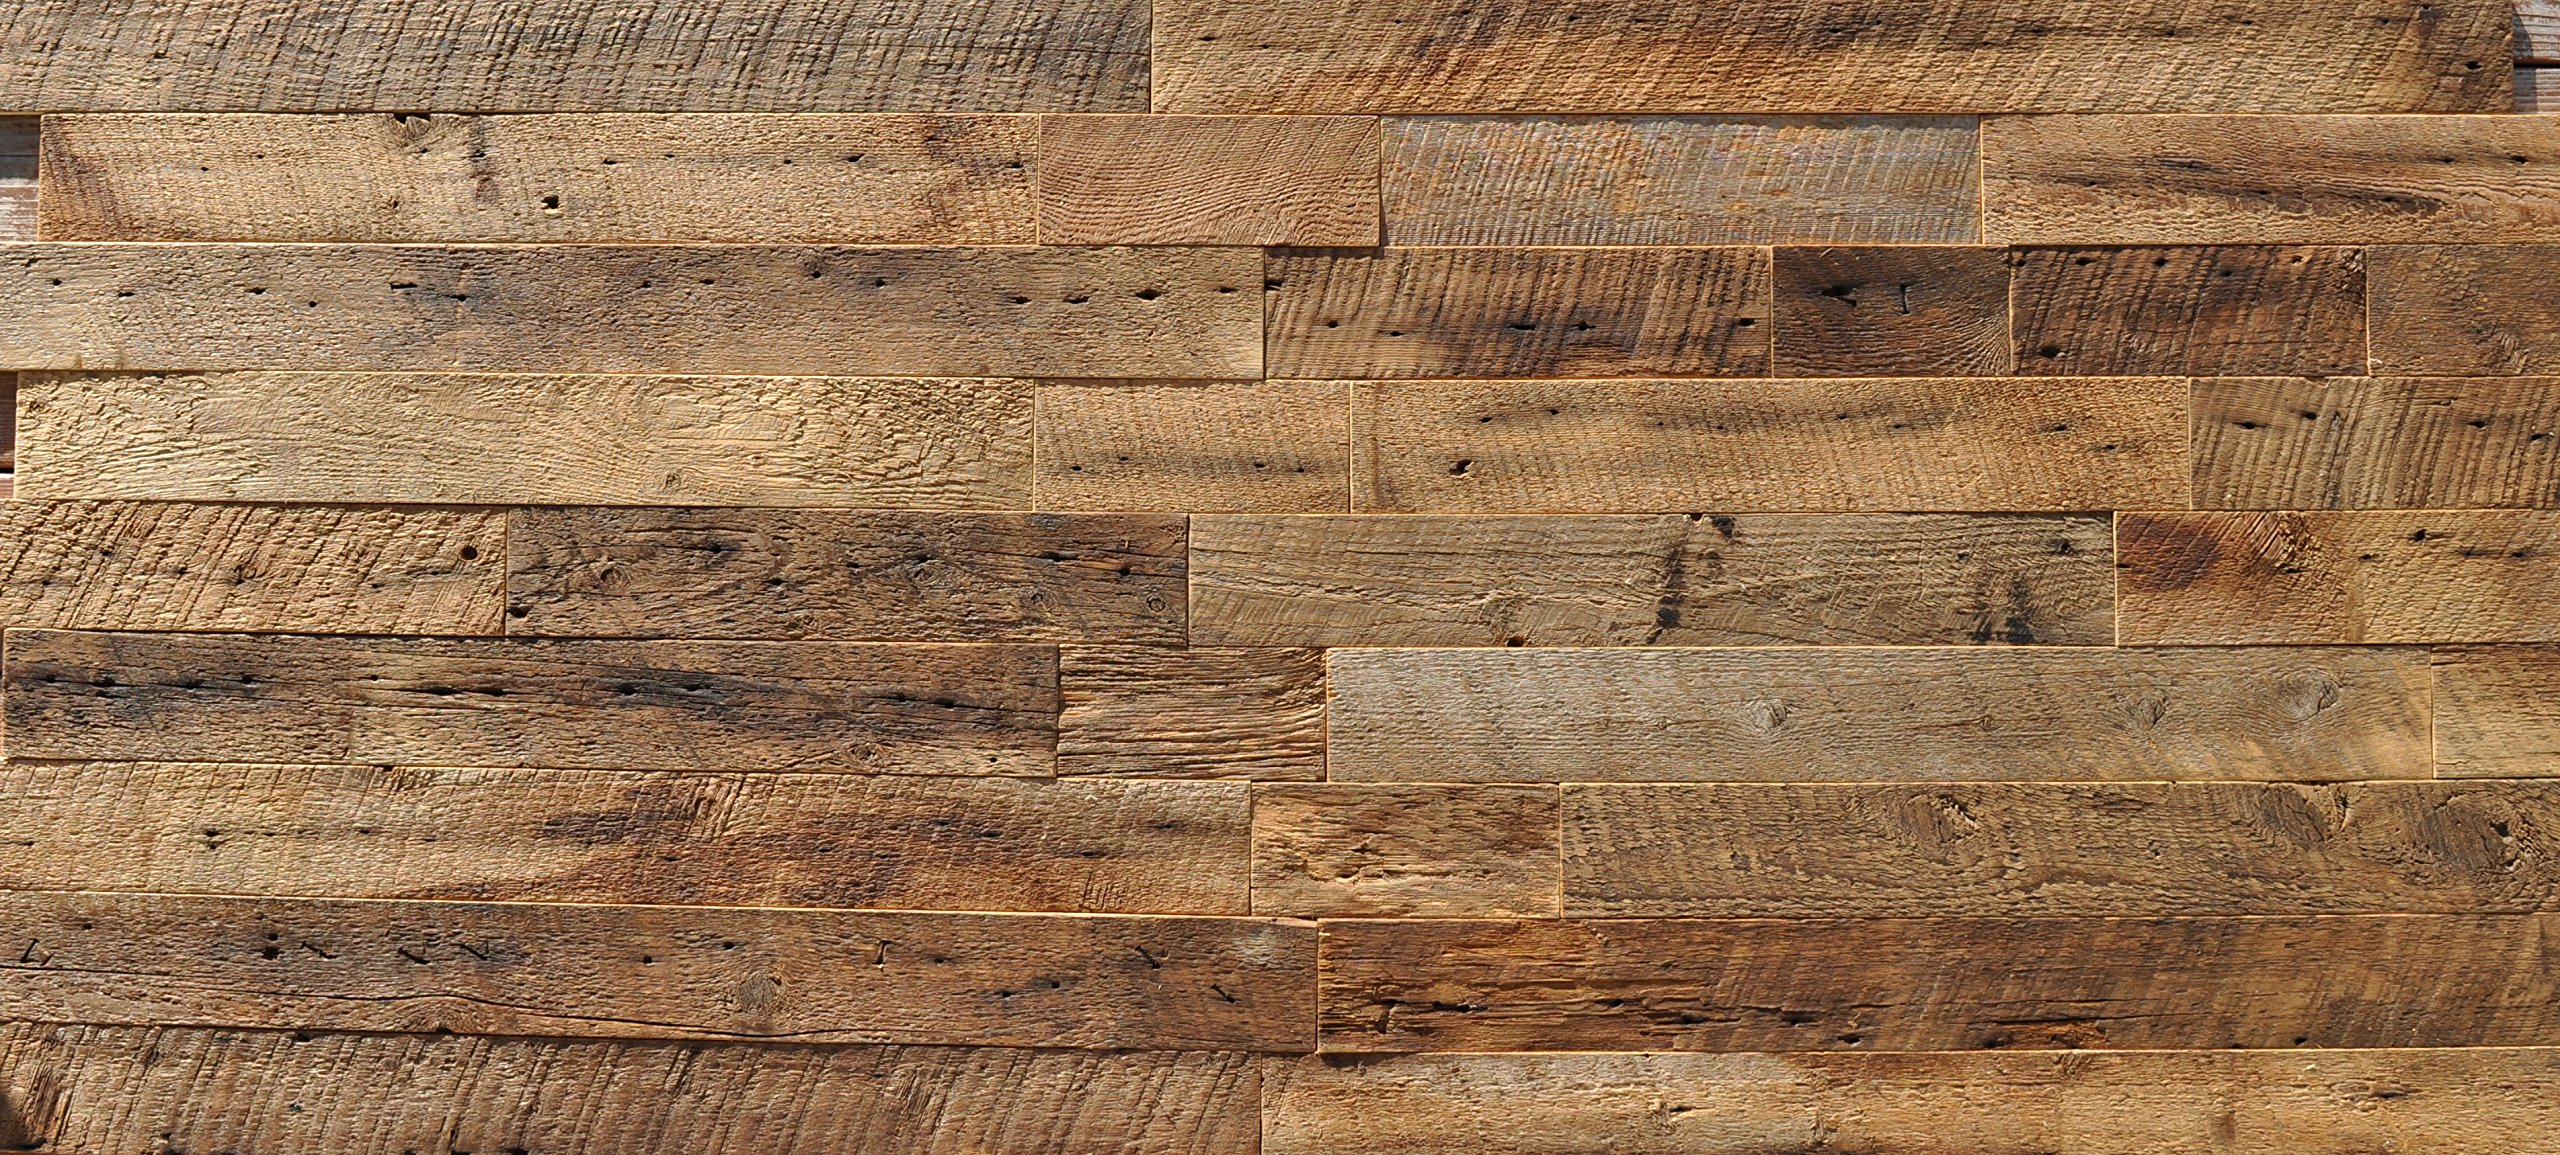 EAST COAST RUSTIC Reclaimed Barn Wood Wall Panels - Easy Install Rustic Wood DIY Wall Covering for Feature Walls (20 Sq Ft - 3.5'' Wide, Brown Natural) by East Coast Rustic (Image #2)